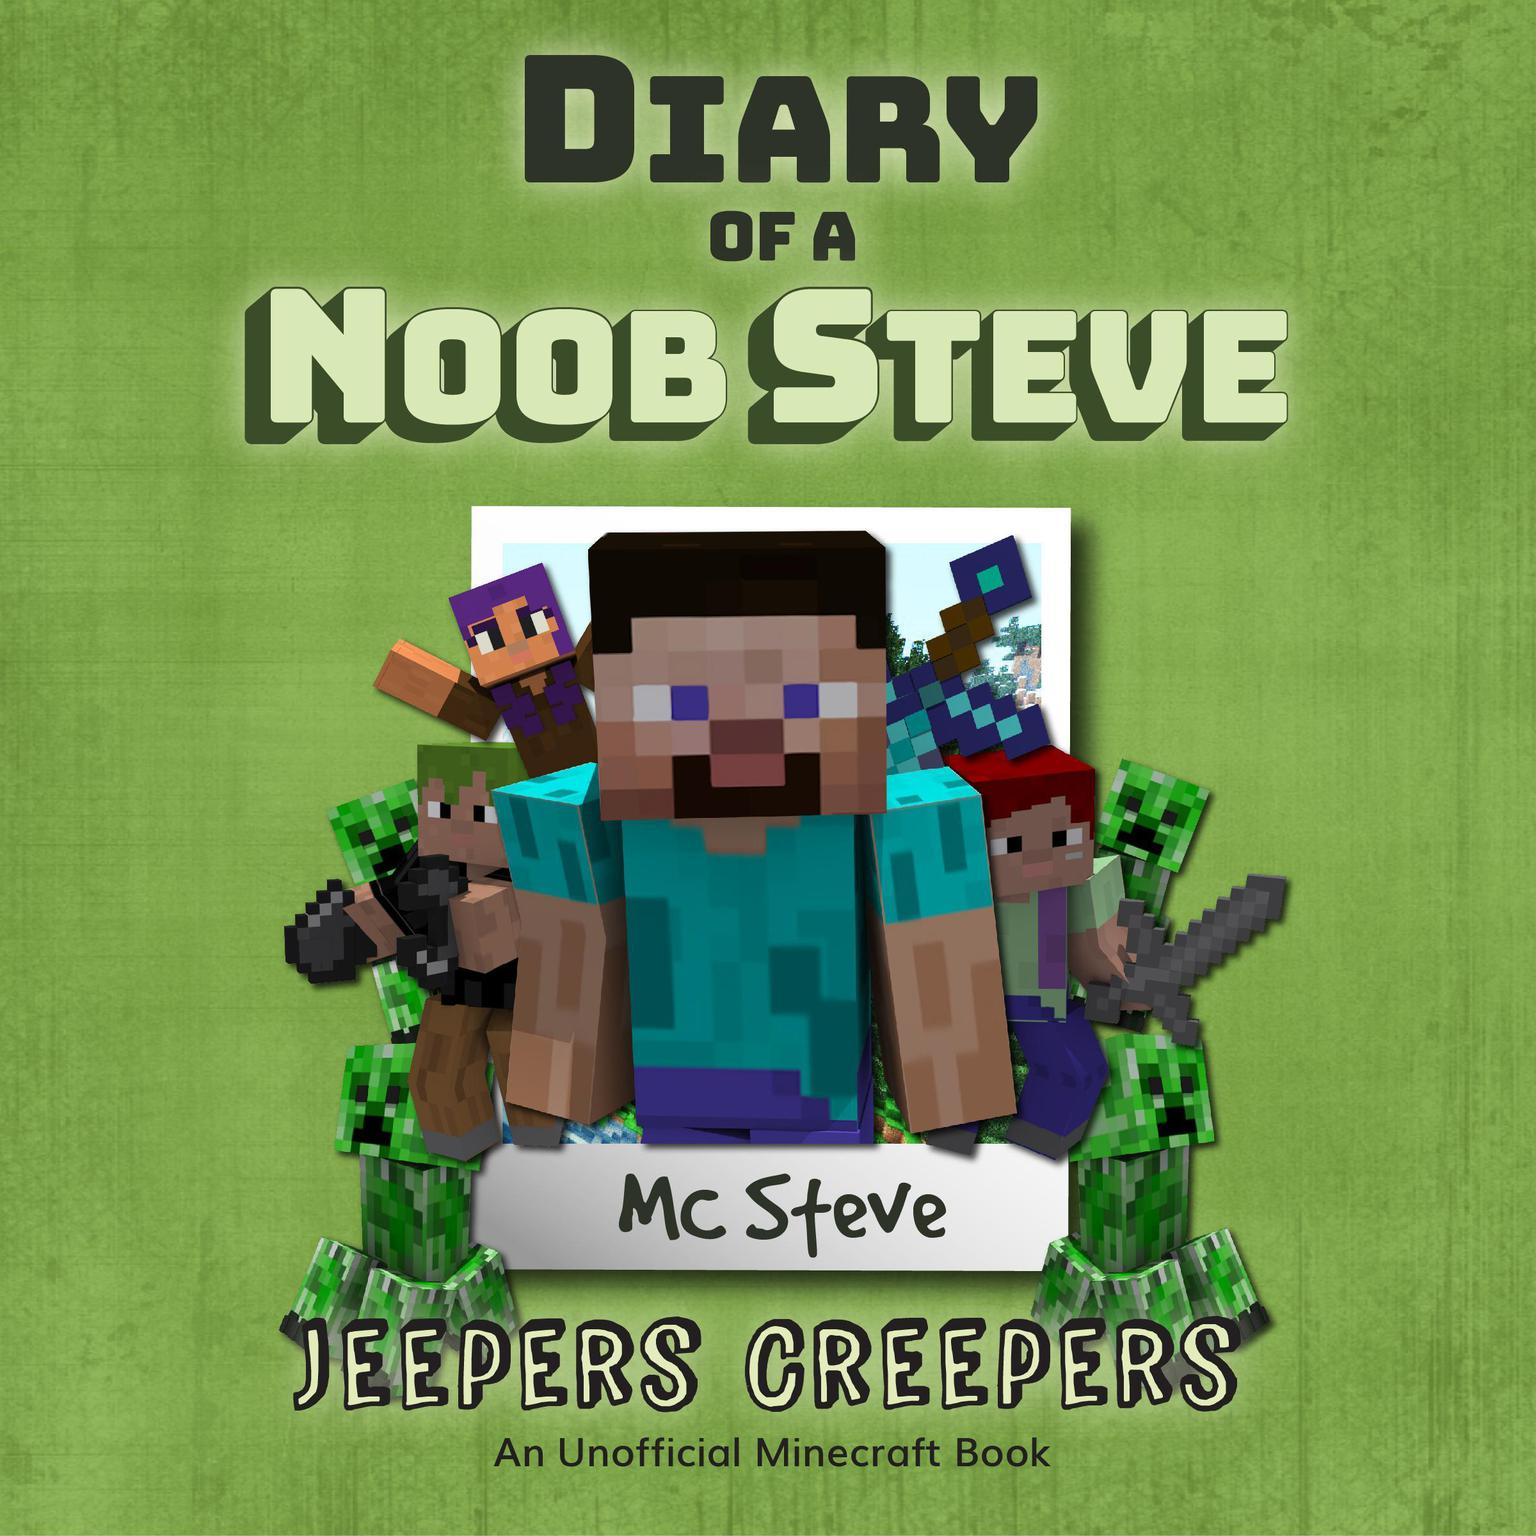 Printable Minecraft: Diary of a Minecraft Noob Steve Book 3: Jeepers Creepers:  (An Unofficial Minecraft Diary Book) Audiobook Cover Art